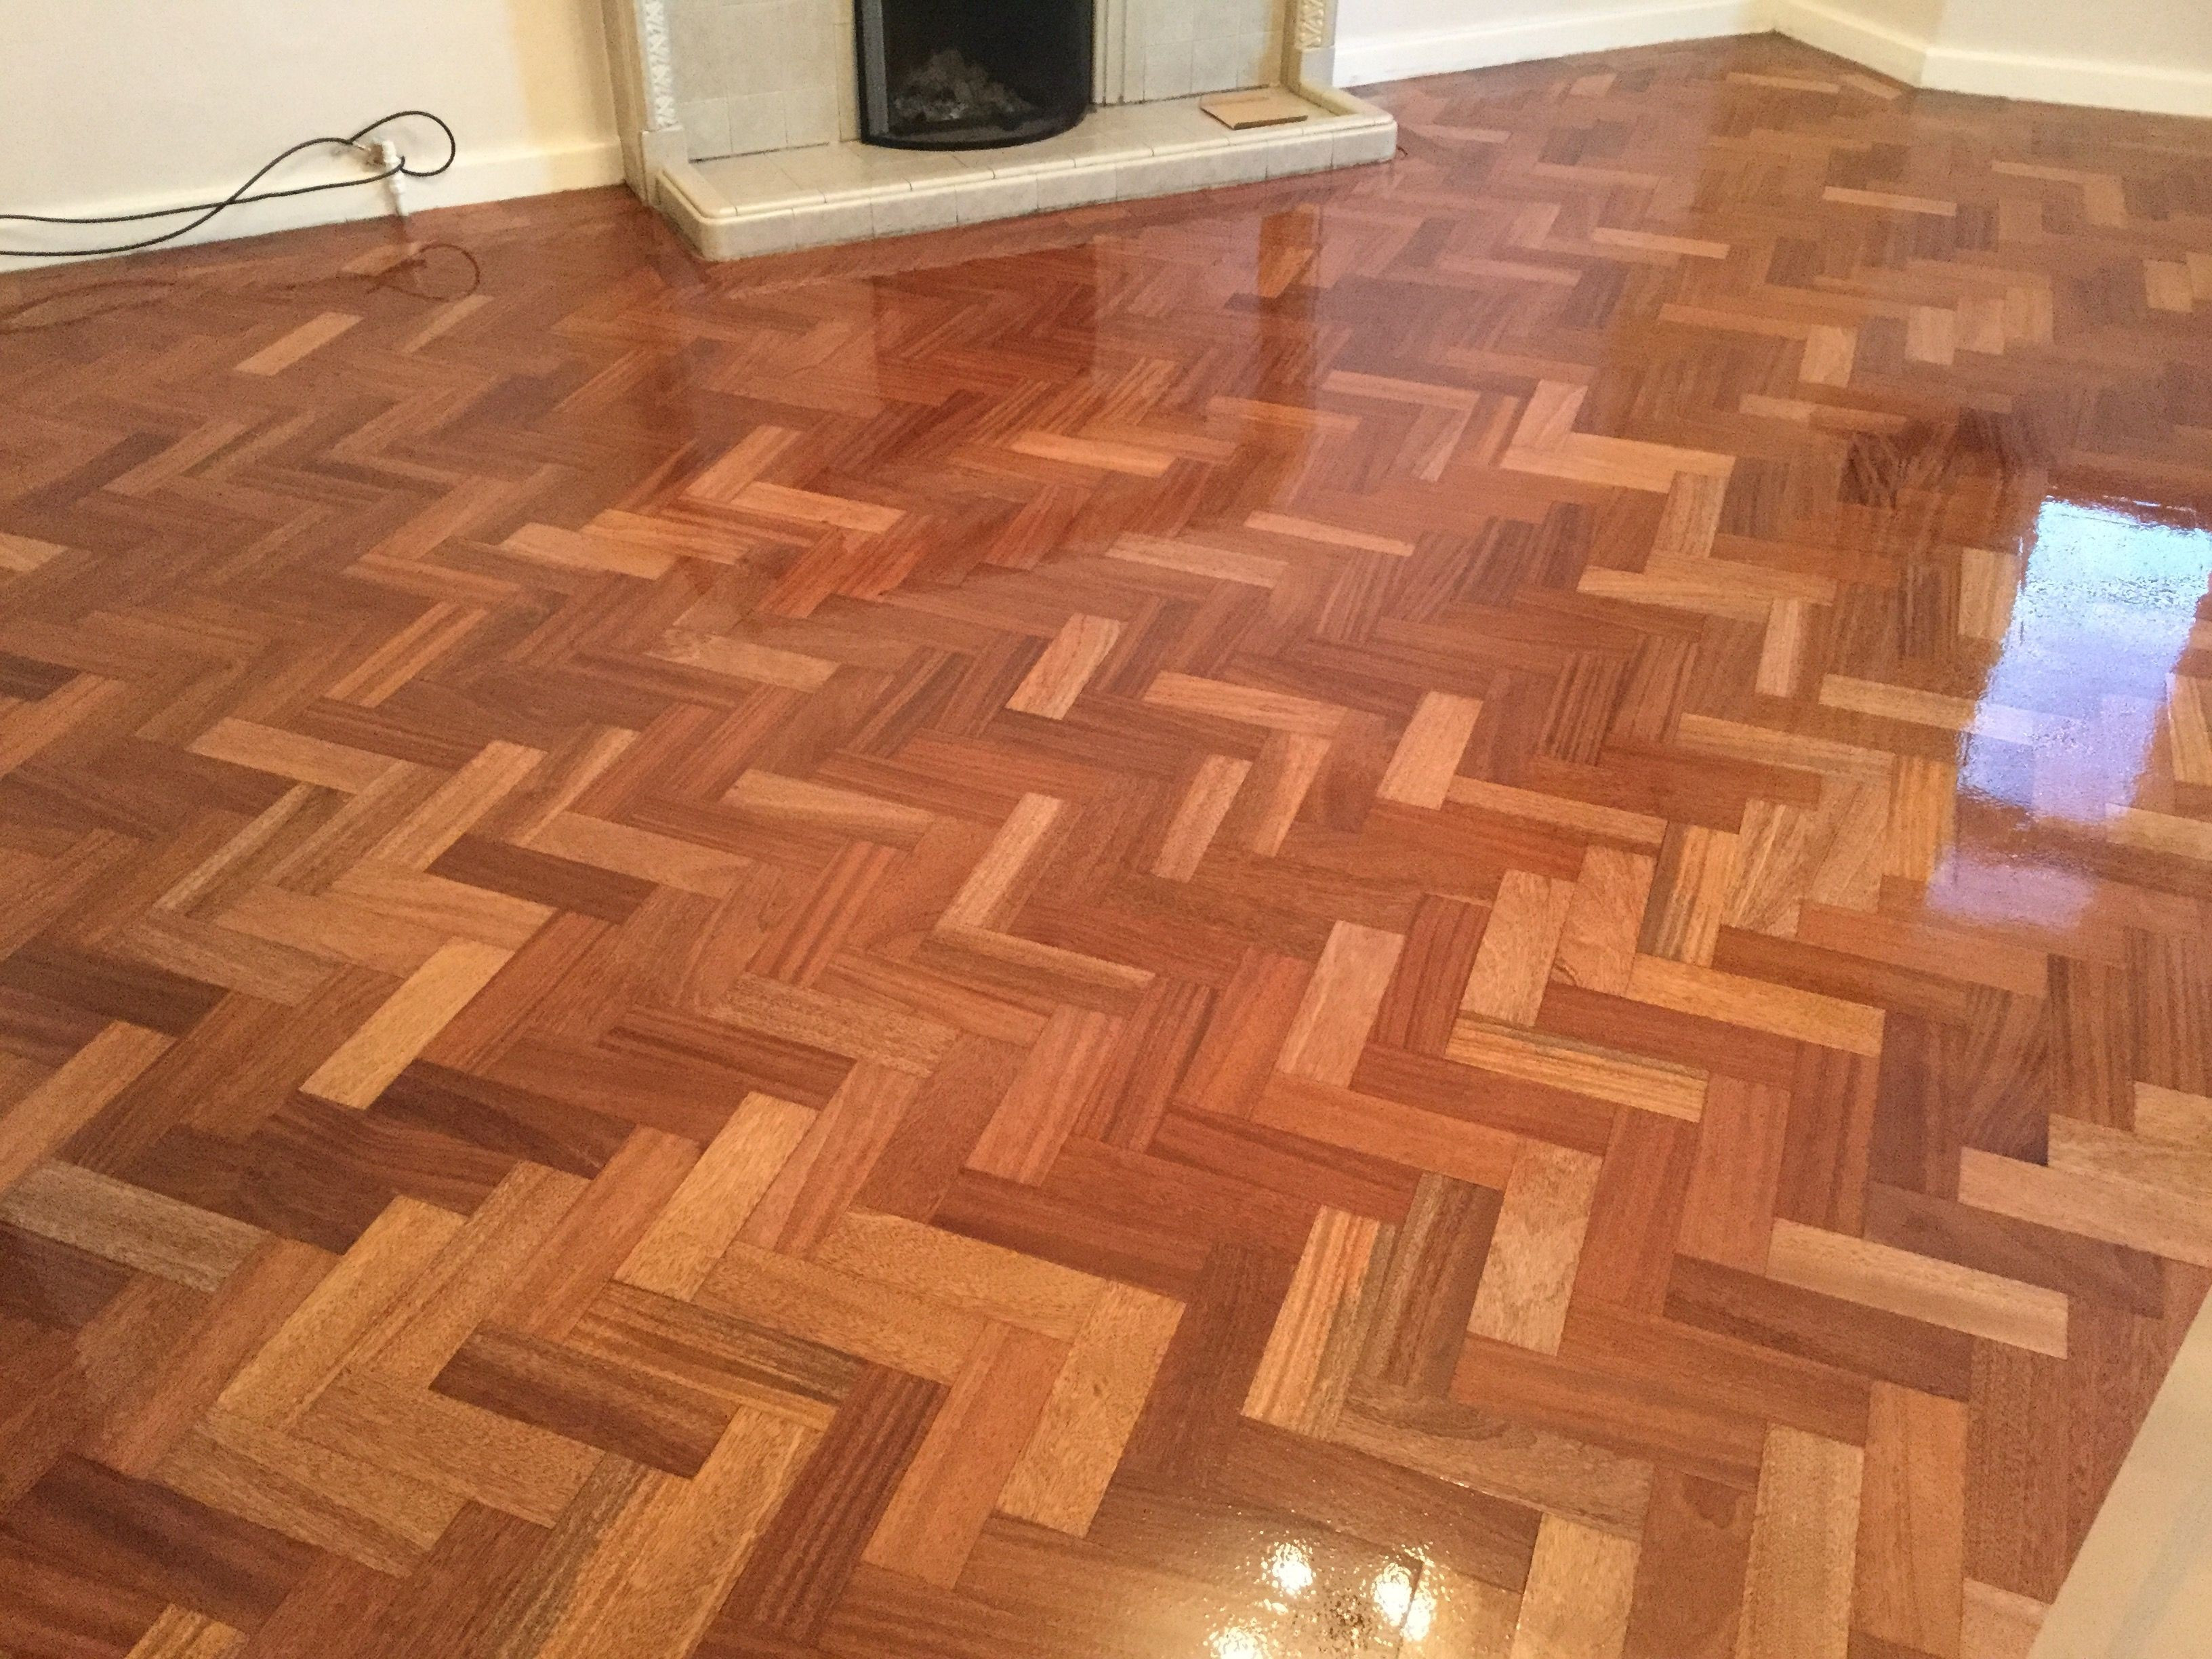 29 Awesome Ss Hardwood Floors 2021 free download ss hardwood floors of https dizpos com make your own hardwood floor home remodel pertaining to bona hardwood fresh this teak floor was given a new lease of life with bona mega lacquer photog